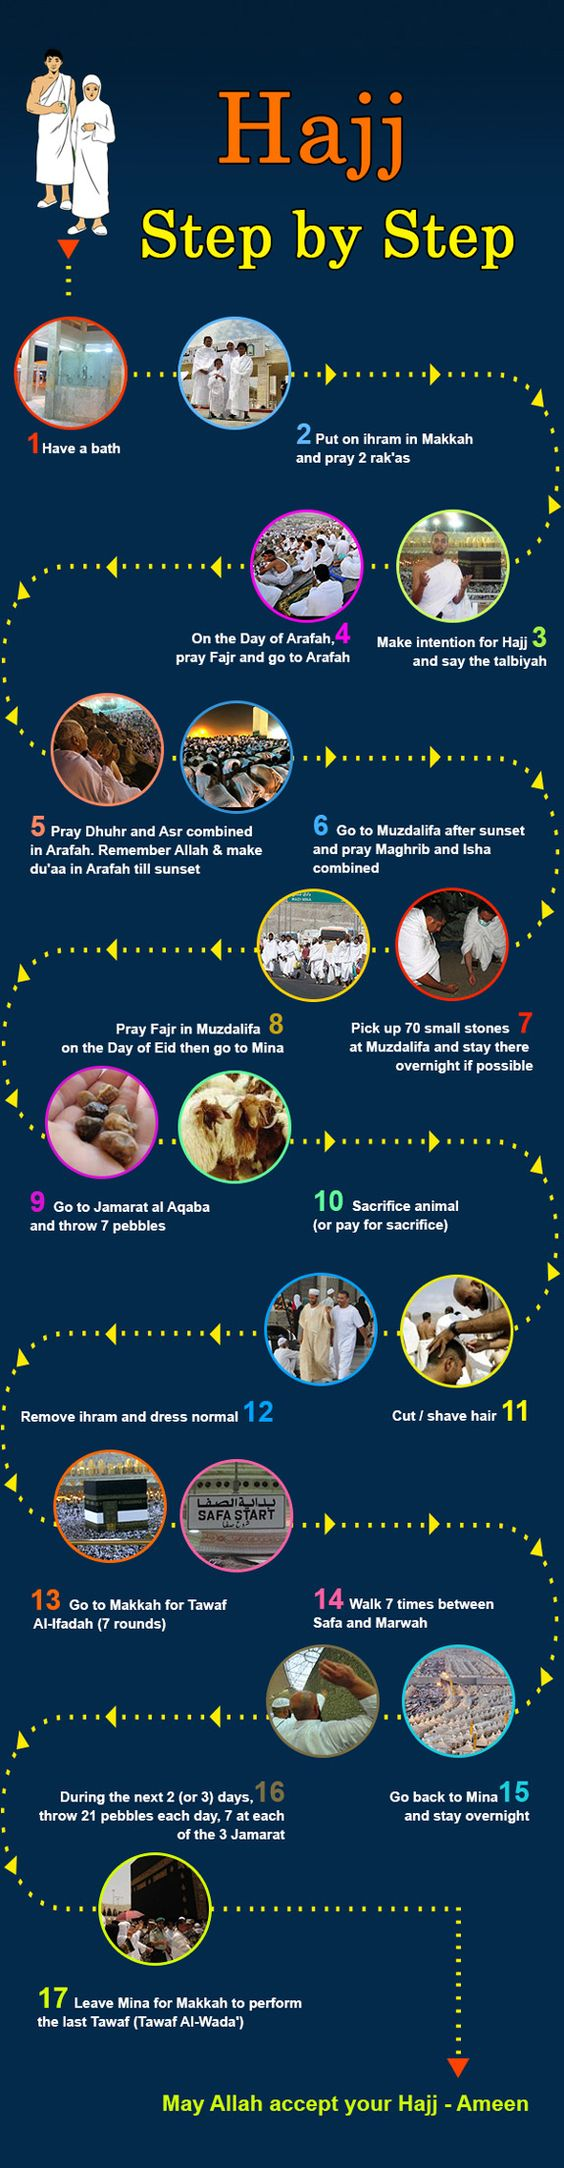 hajj-step-by-step